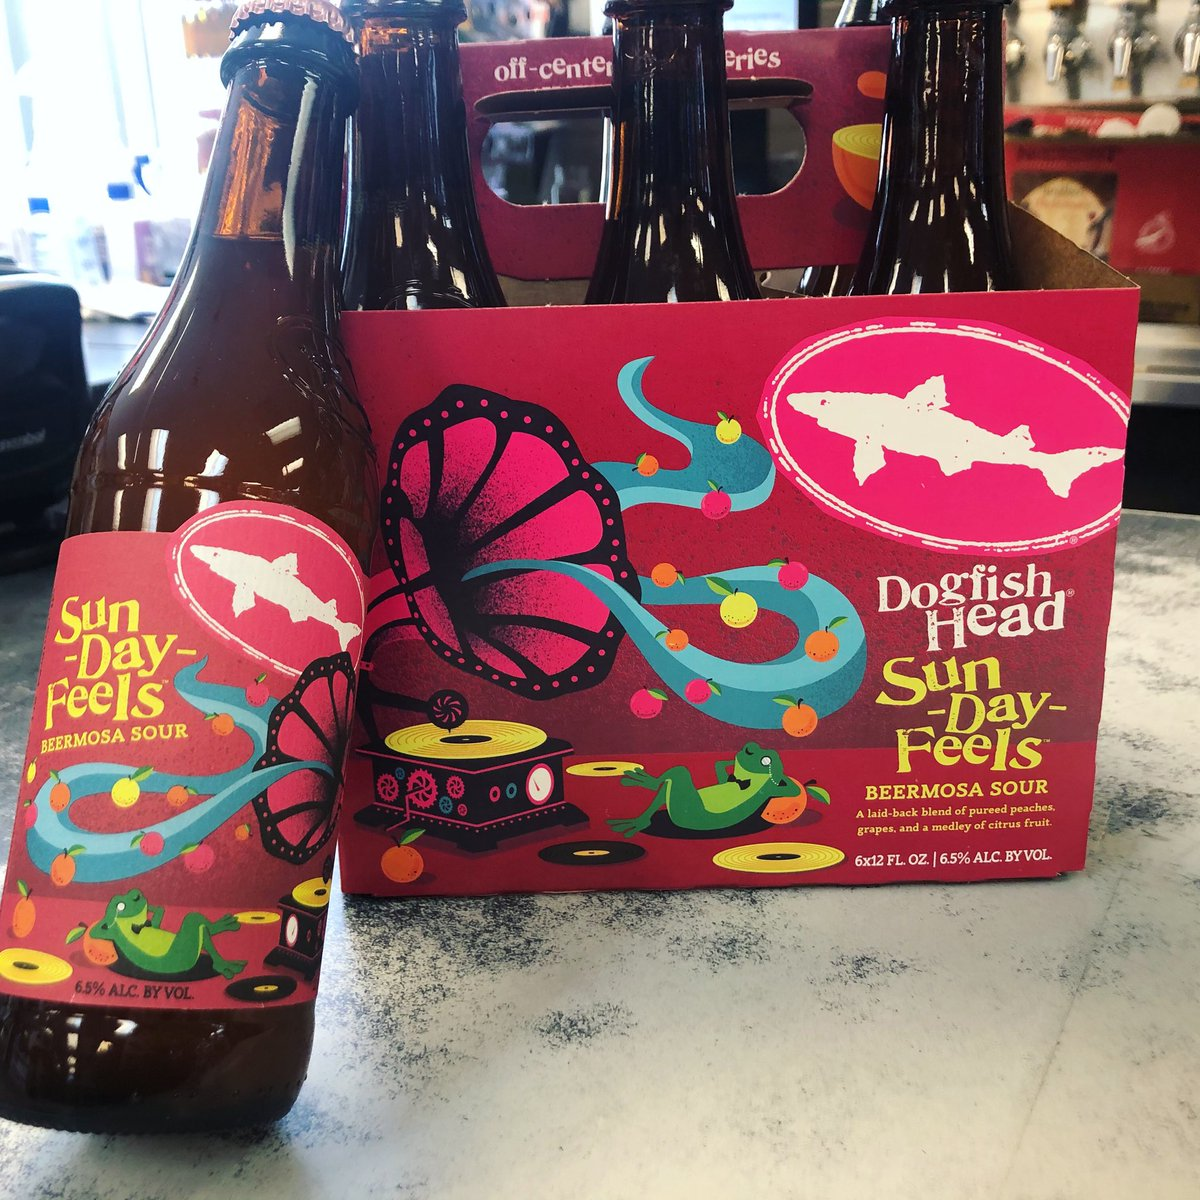 Sunday Feels from @dogfishhead is here! #newarrivals #craftbeerpic.twitter.com/SnnKb4qN4U